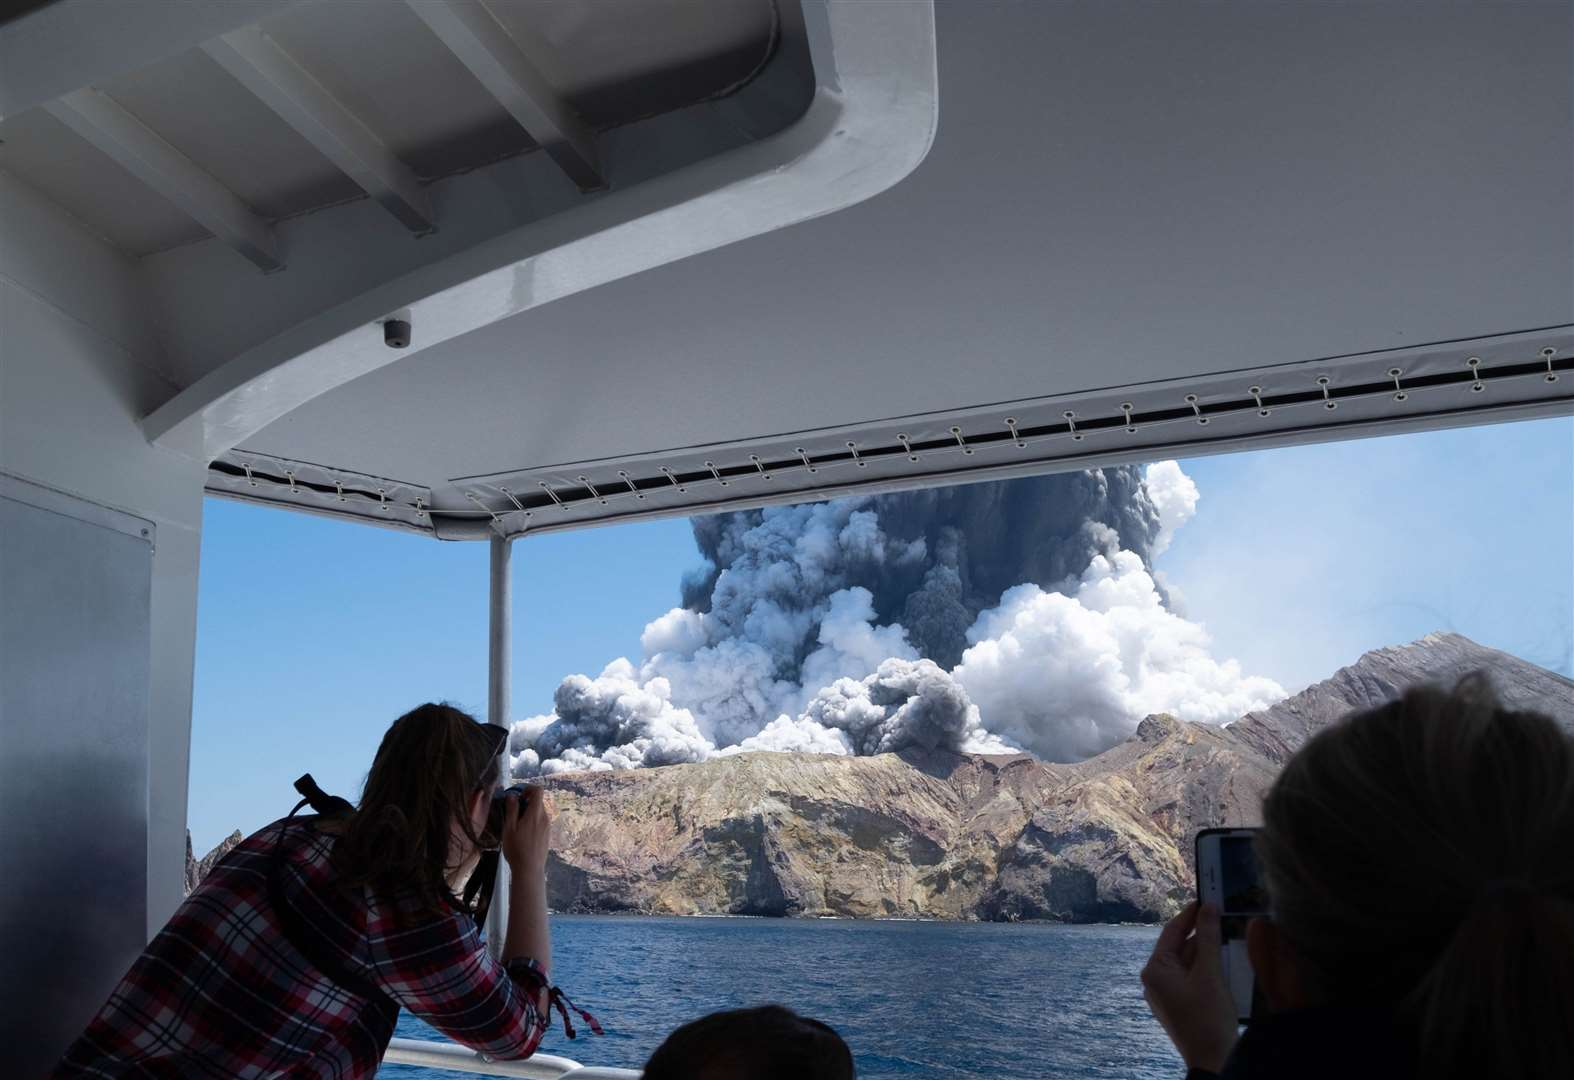 Grantham man who was reported missing in New Zealand is confirmed alive after volcanic eruption